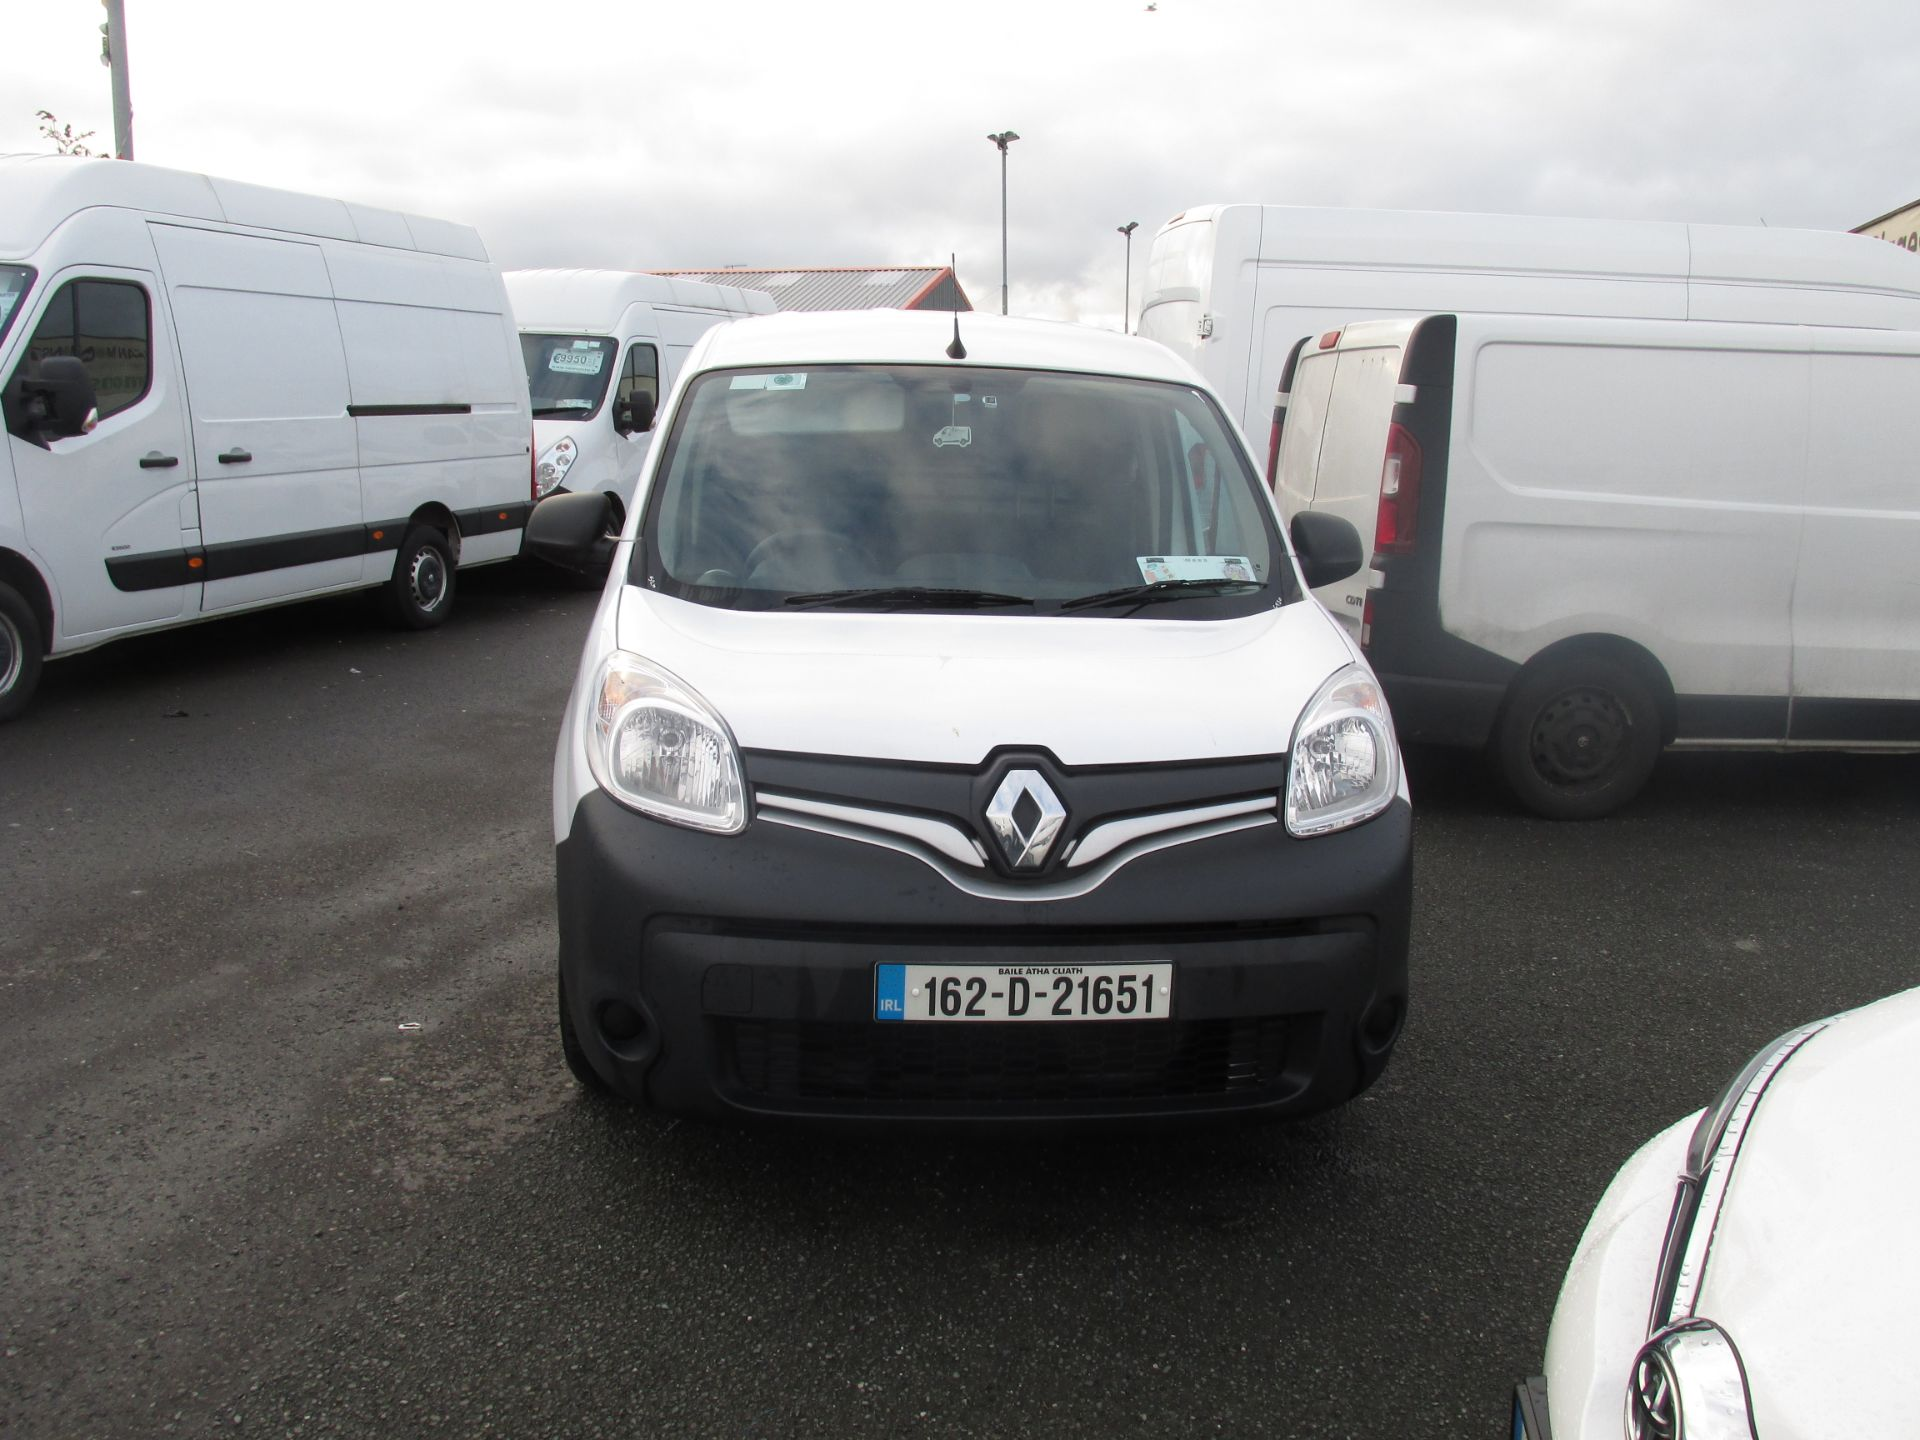 2016 Renault Kangoo ML19 Energy DCI 75 Business 2D - 100 VANS TO VIEW IN VM SANTRY DUBLIN - (162D21651) Image 8